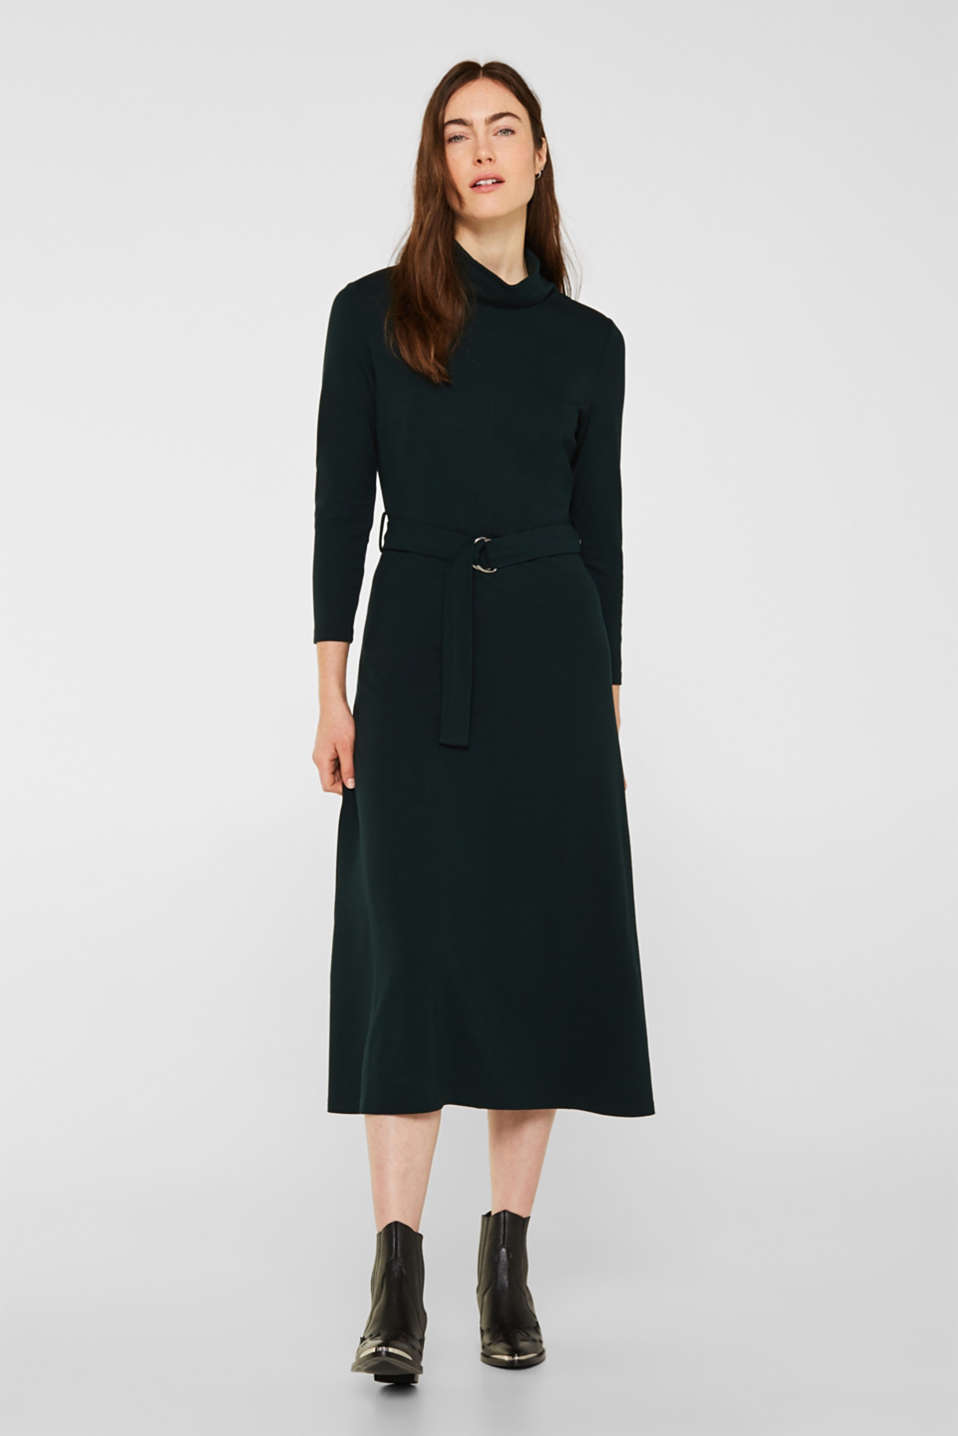 Esprit - Stretch jersey dress with a polo neck